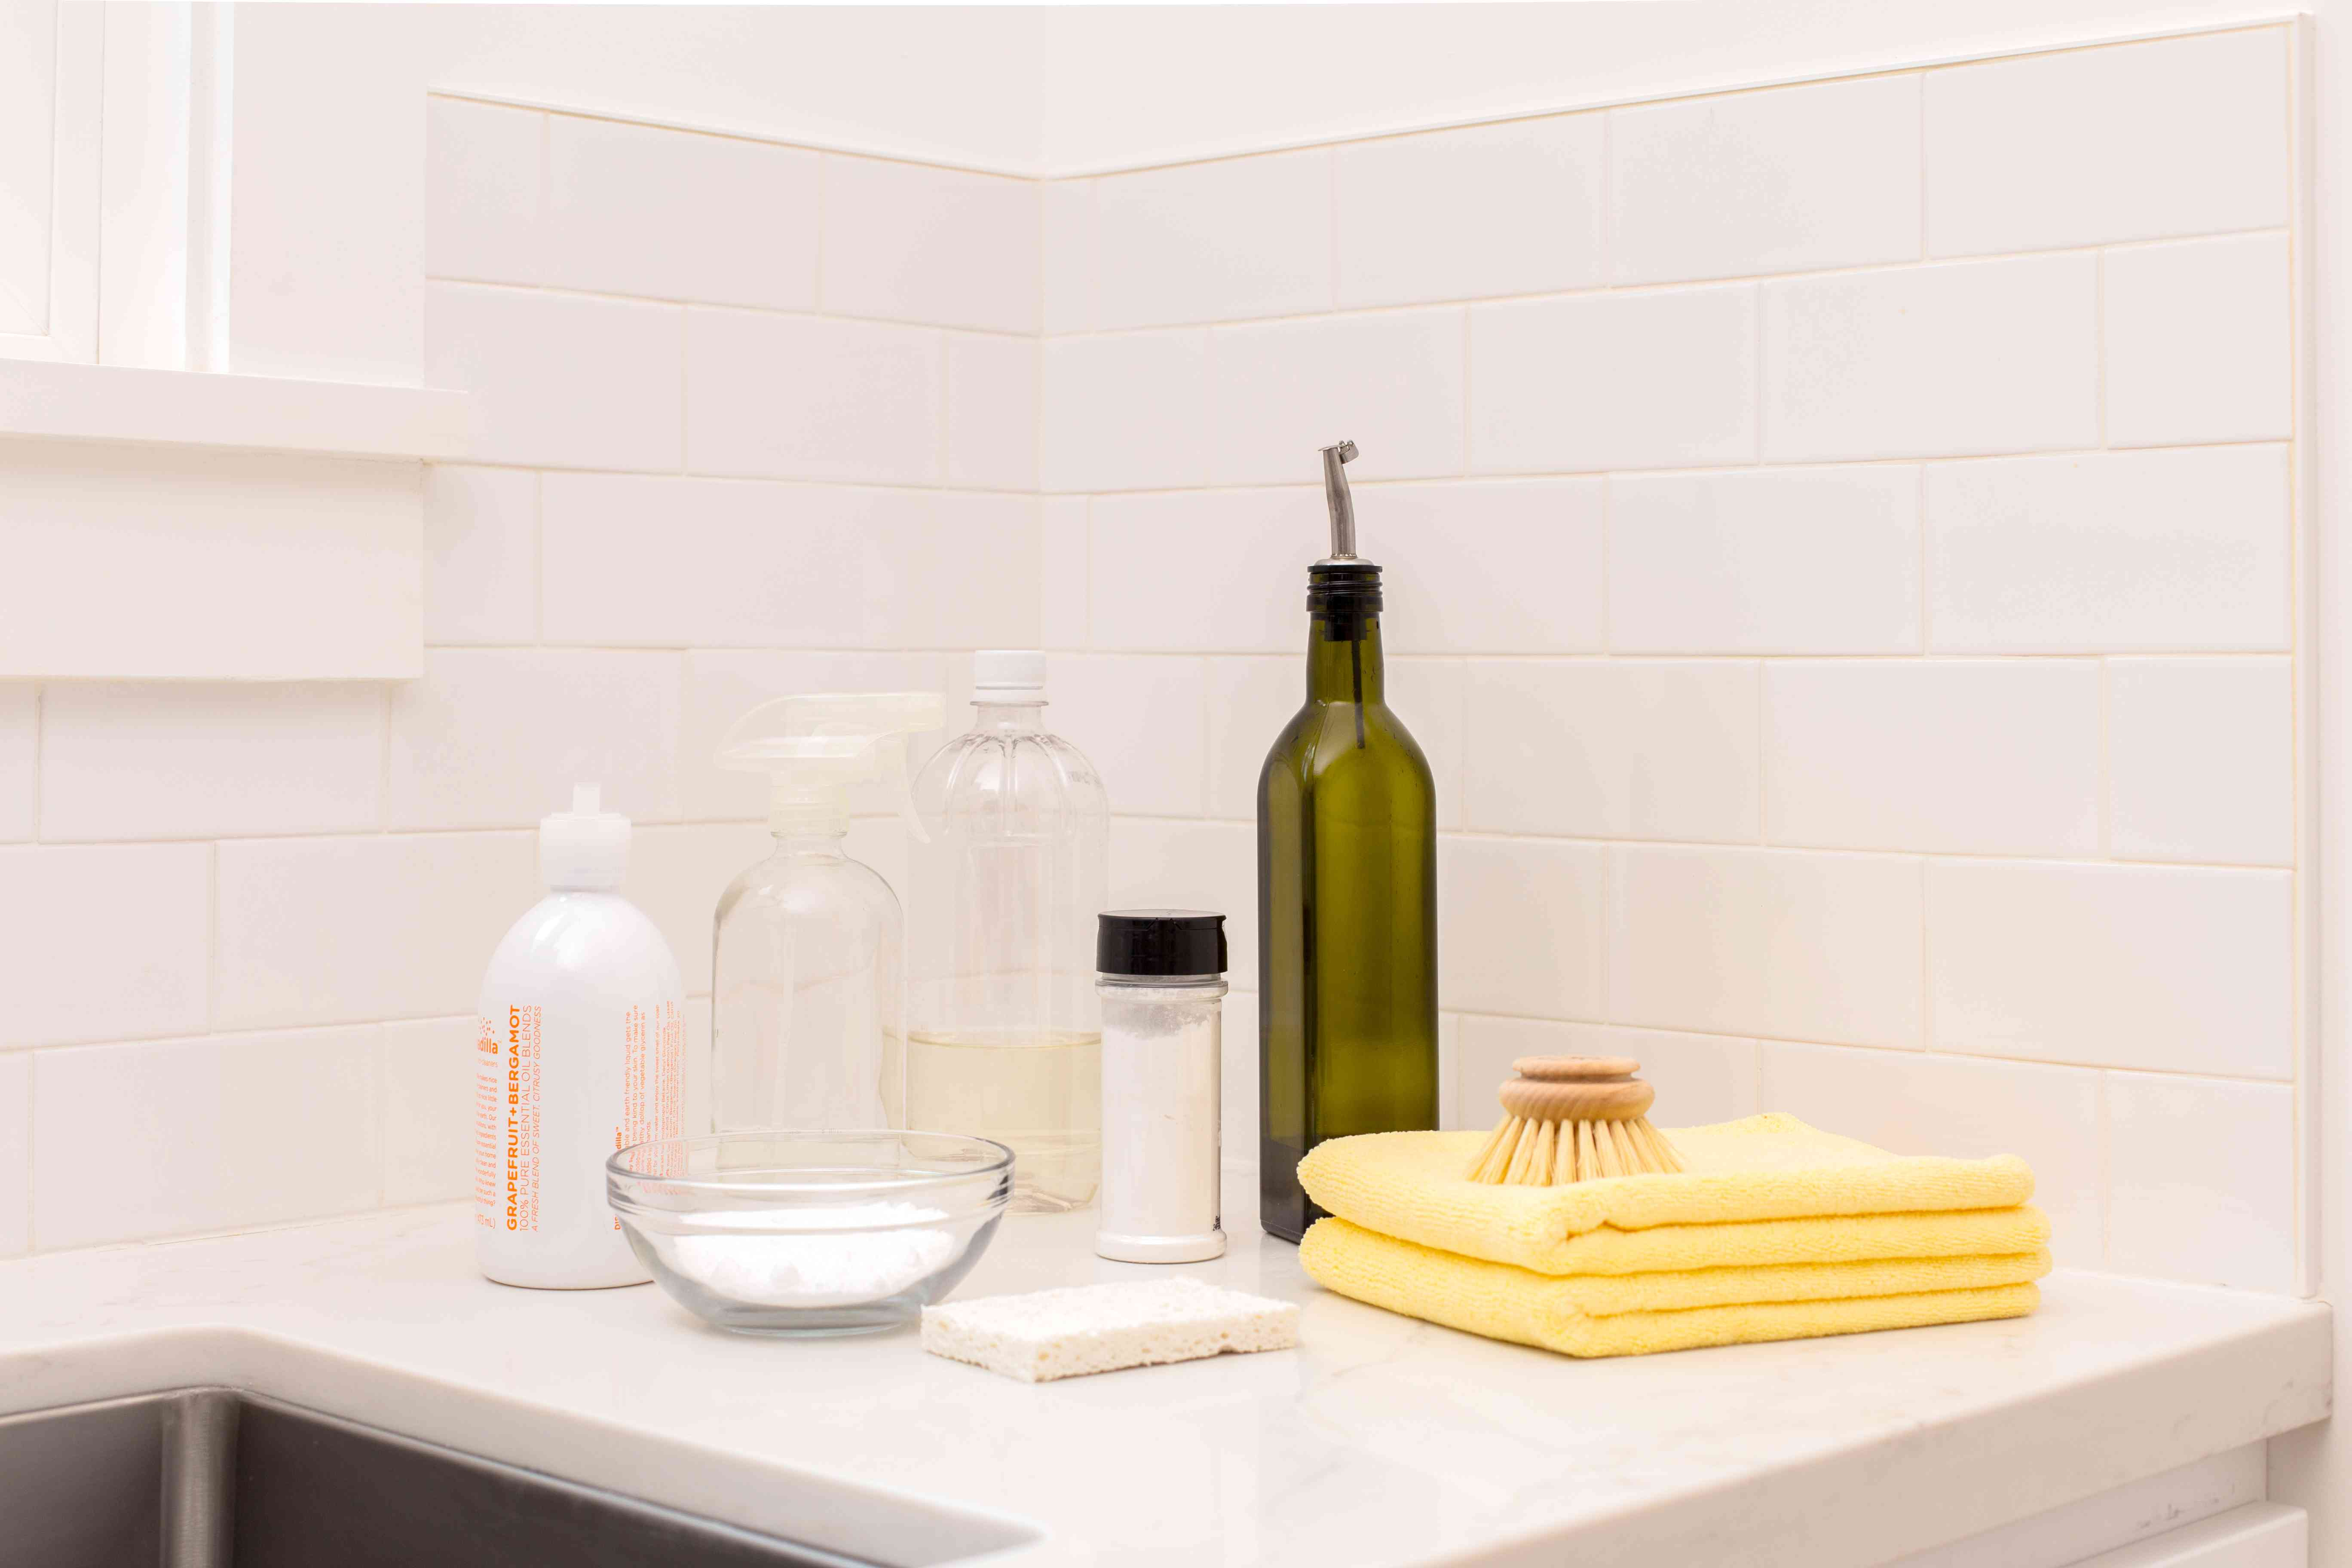 Materials and tools to clean a stainless steel sink